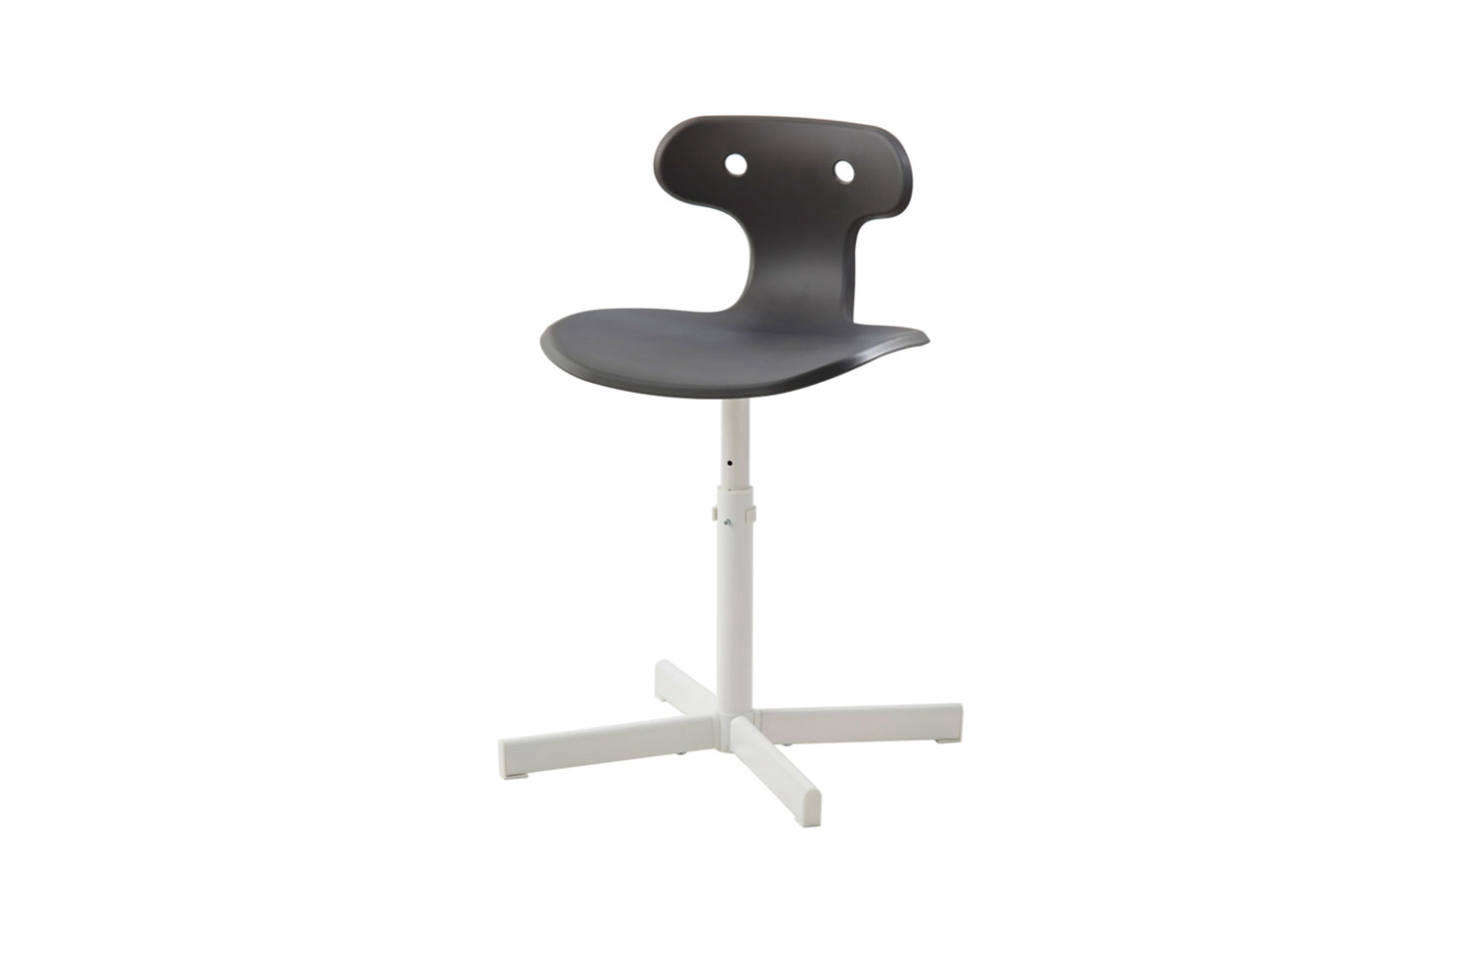 Super 10 Easy Pieces Modern Desk Chairs Without Wheels Remodelista Bralicious Painted Fabric Chair Ideas Braliciousco